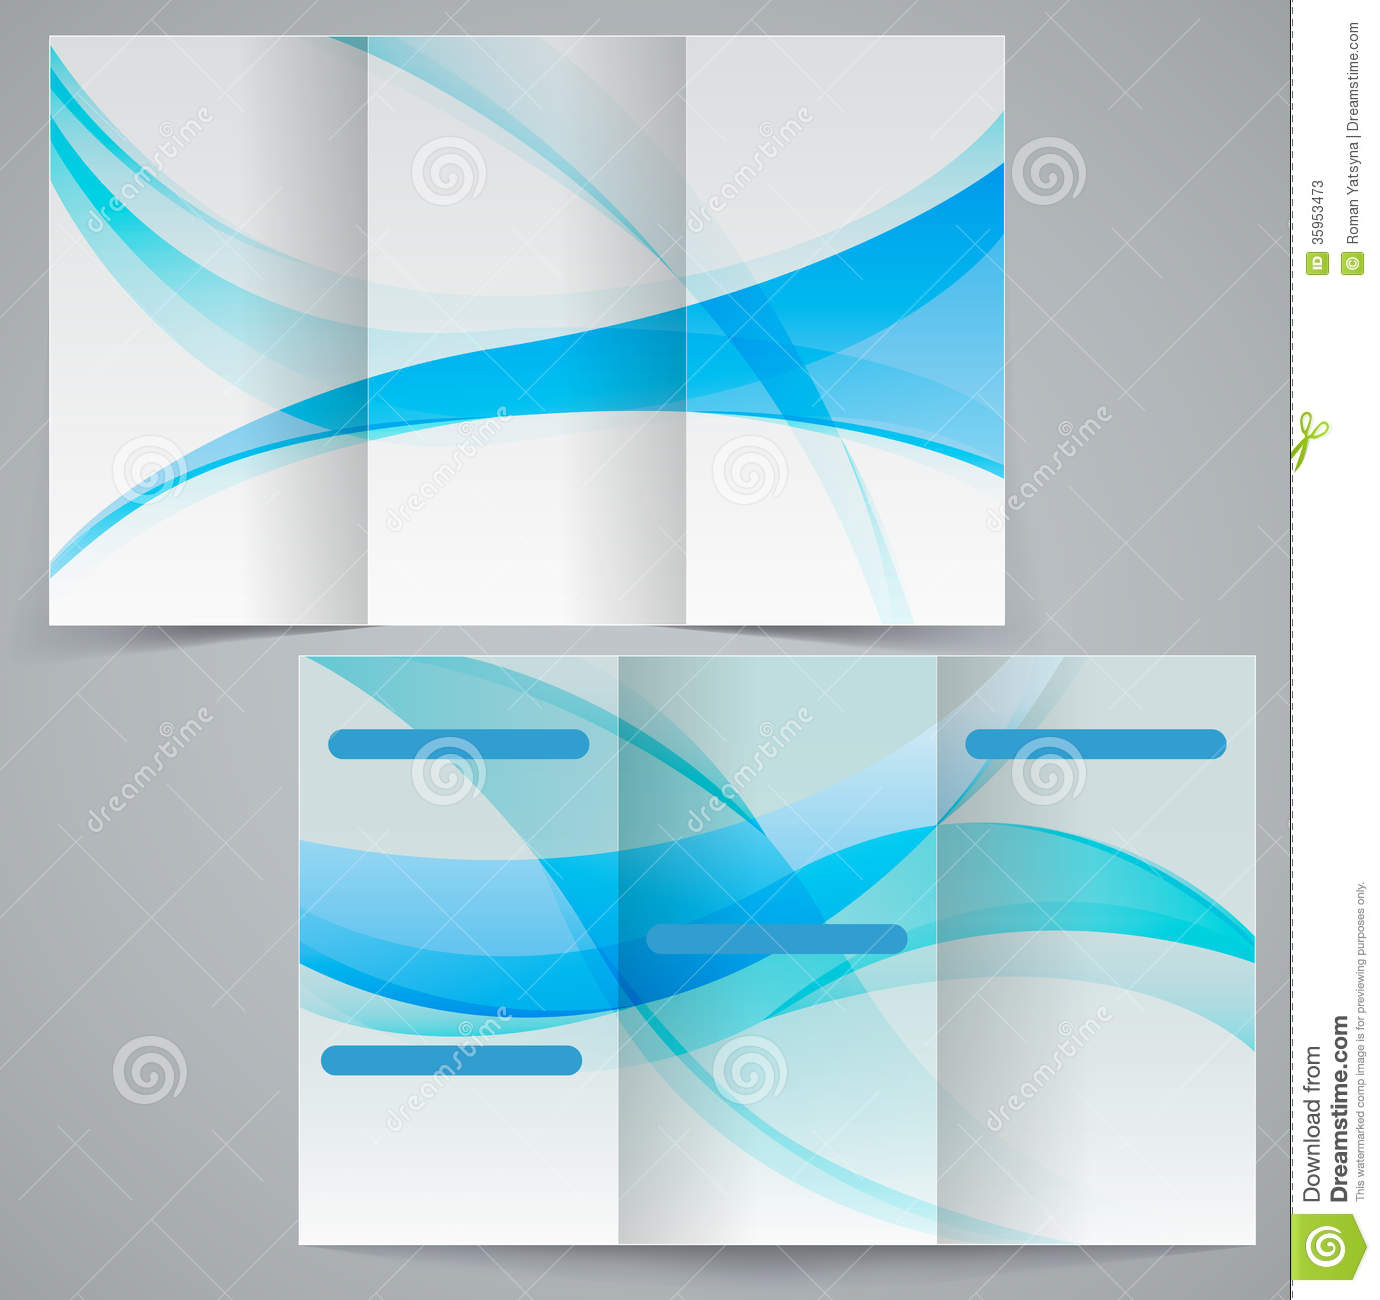 templates brochure free - tri fold business brochure template vector blue d stock